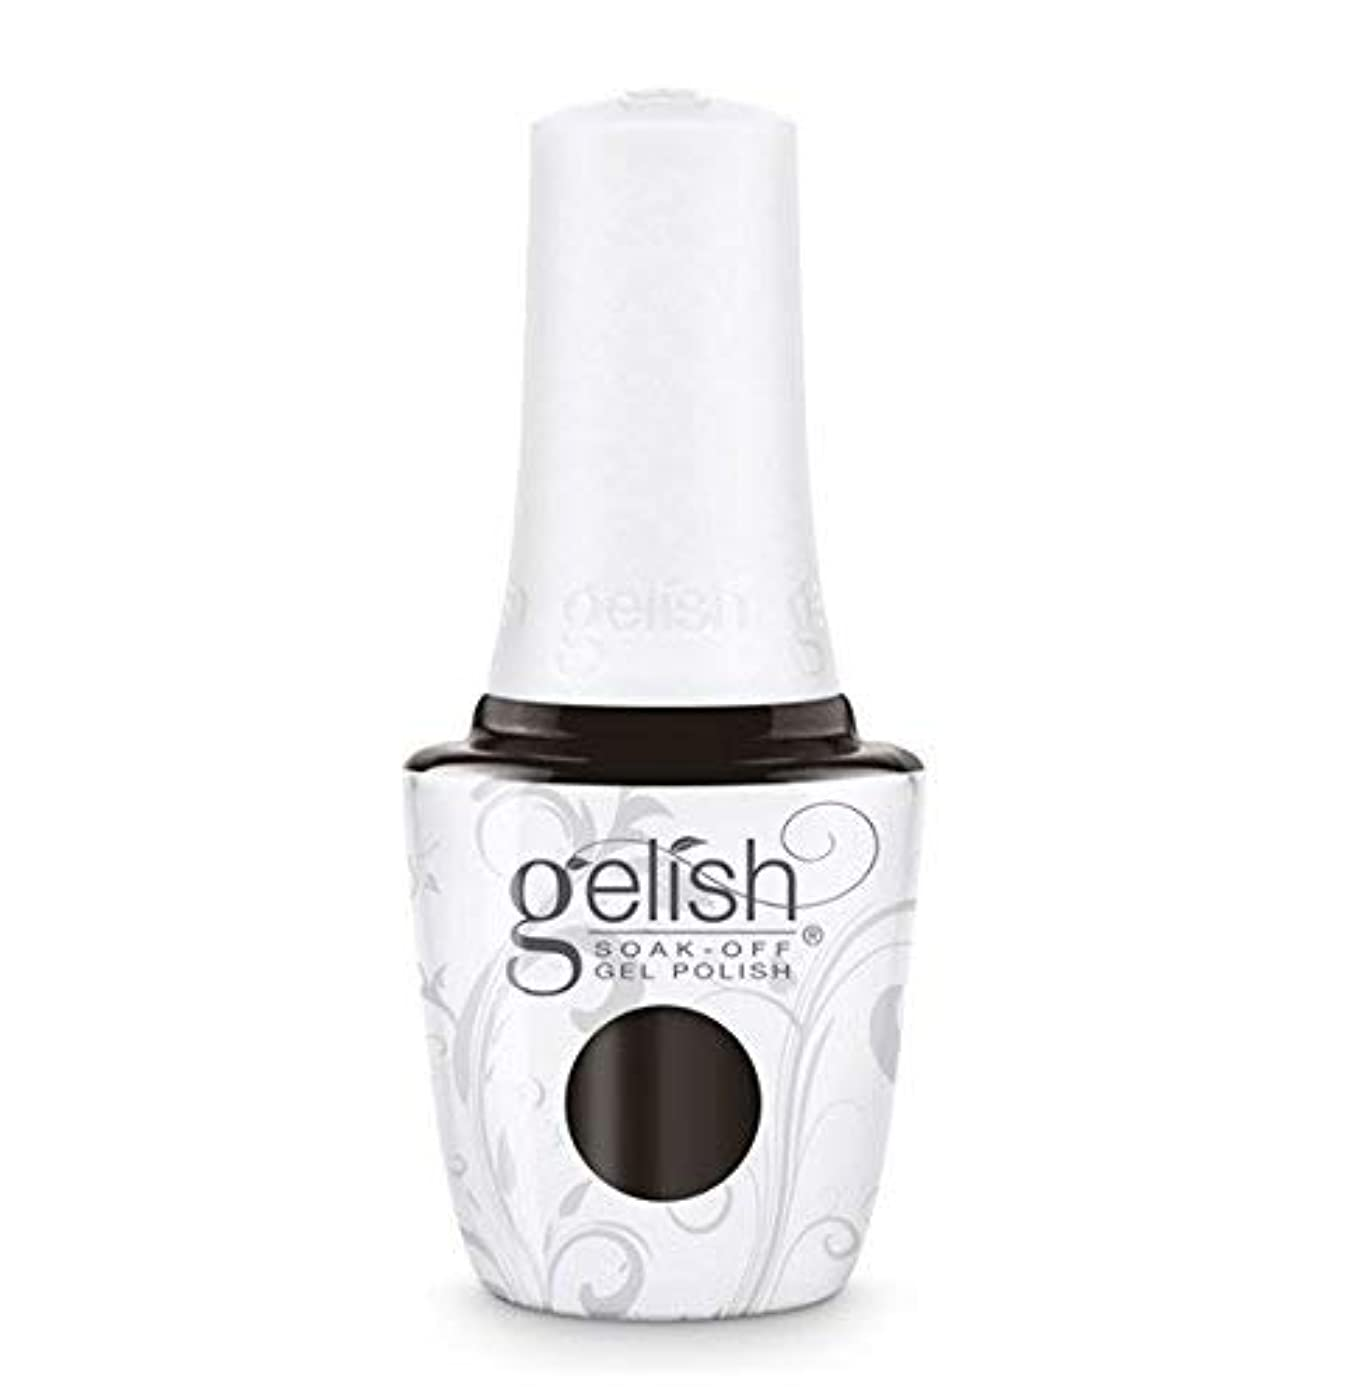 Gelish Soak-Off Gel - African Safari Collection - Off The Grid - 15 ml/05 oz